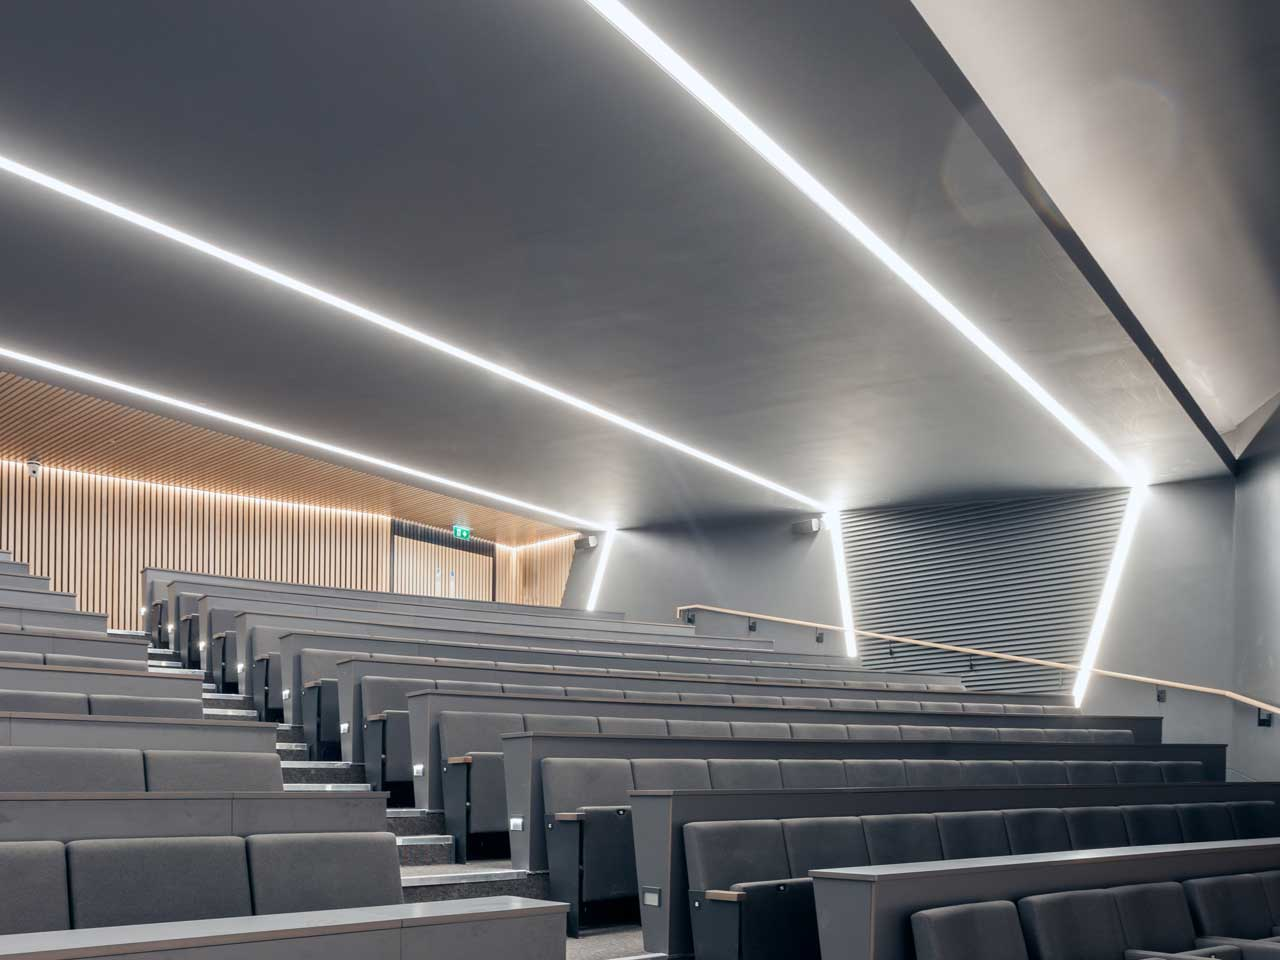 ECI Lighting worked closely on the lighting design with Axis Engineering